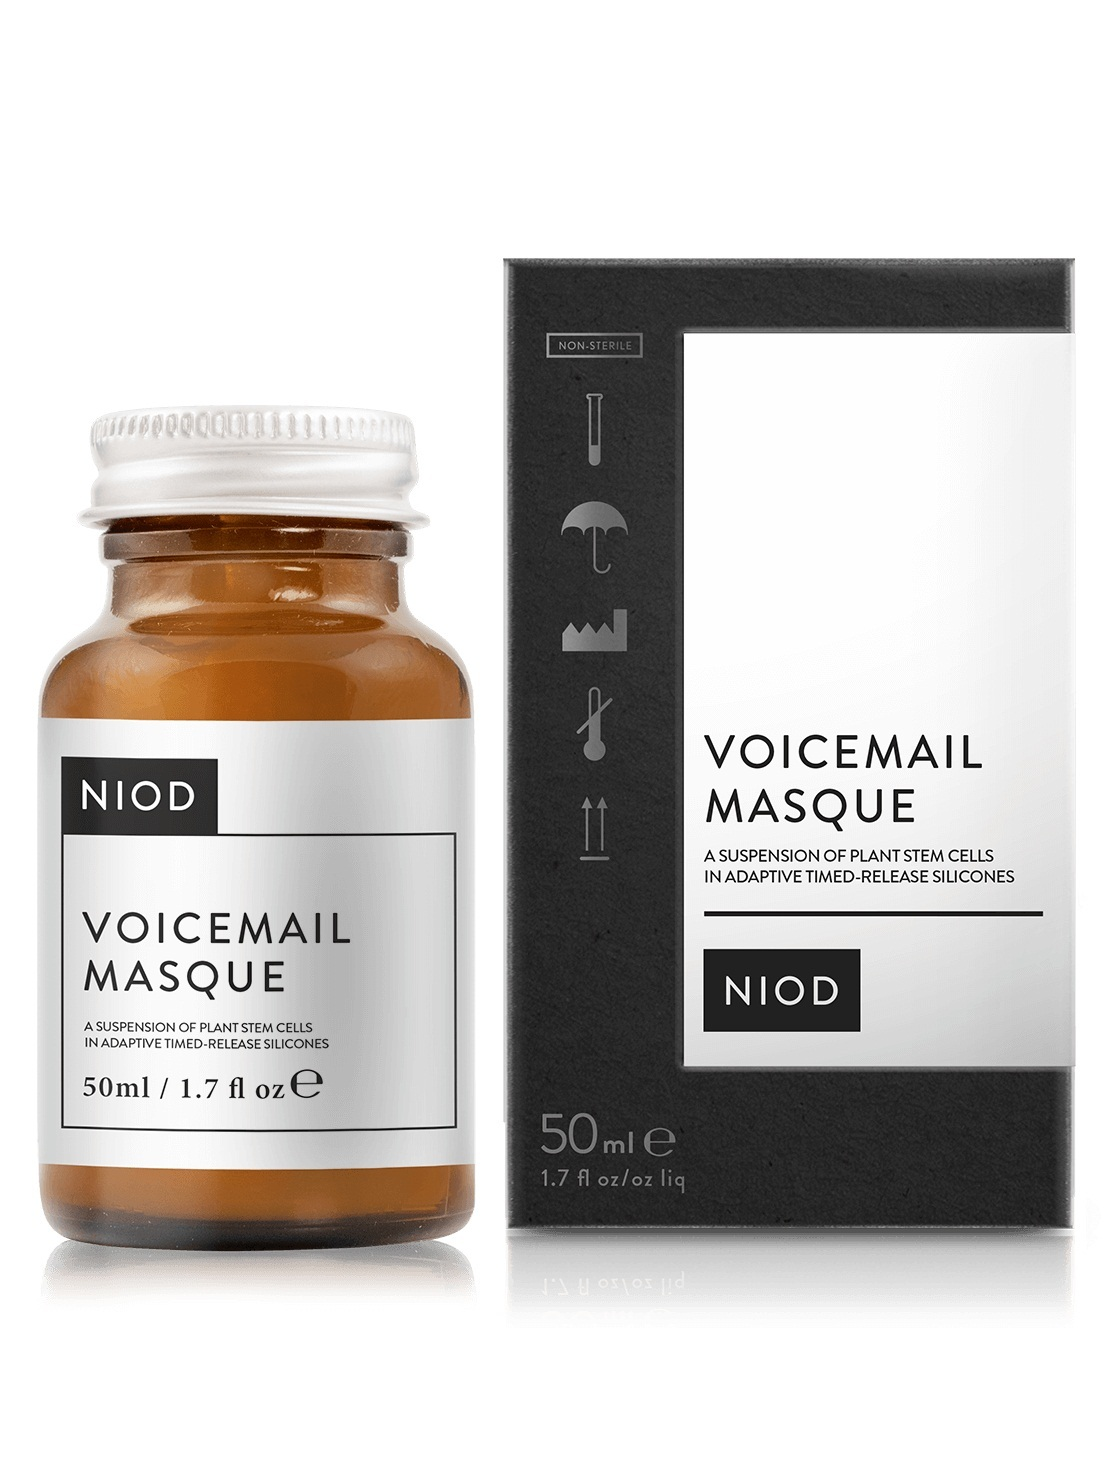 nid-voicemail-masque-50ml.jpg